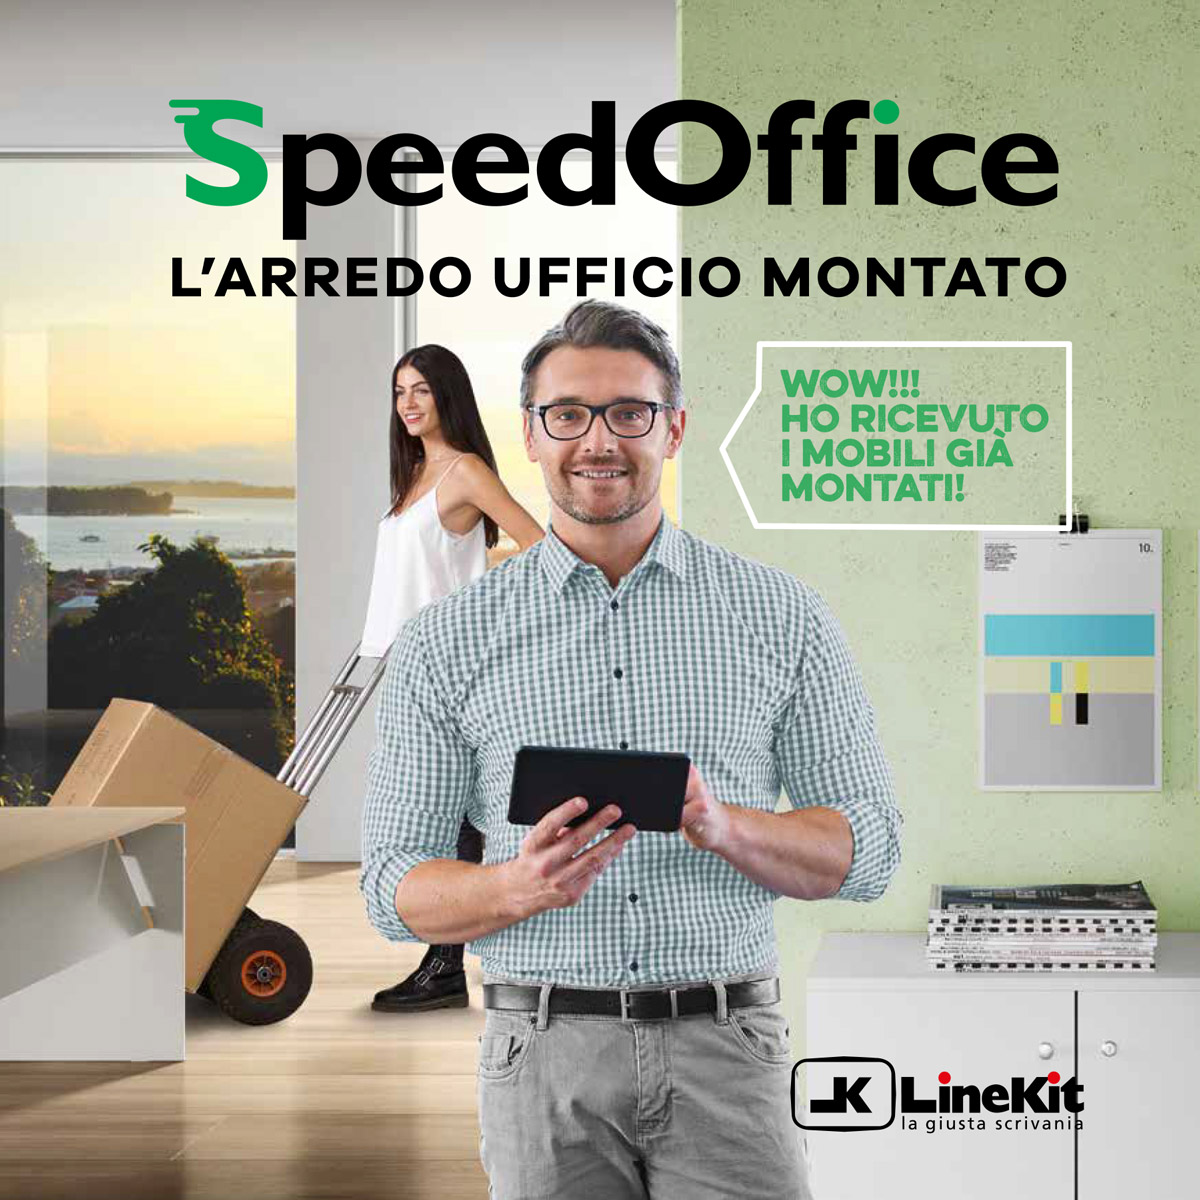 SPEED-OFFICE